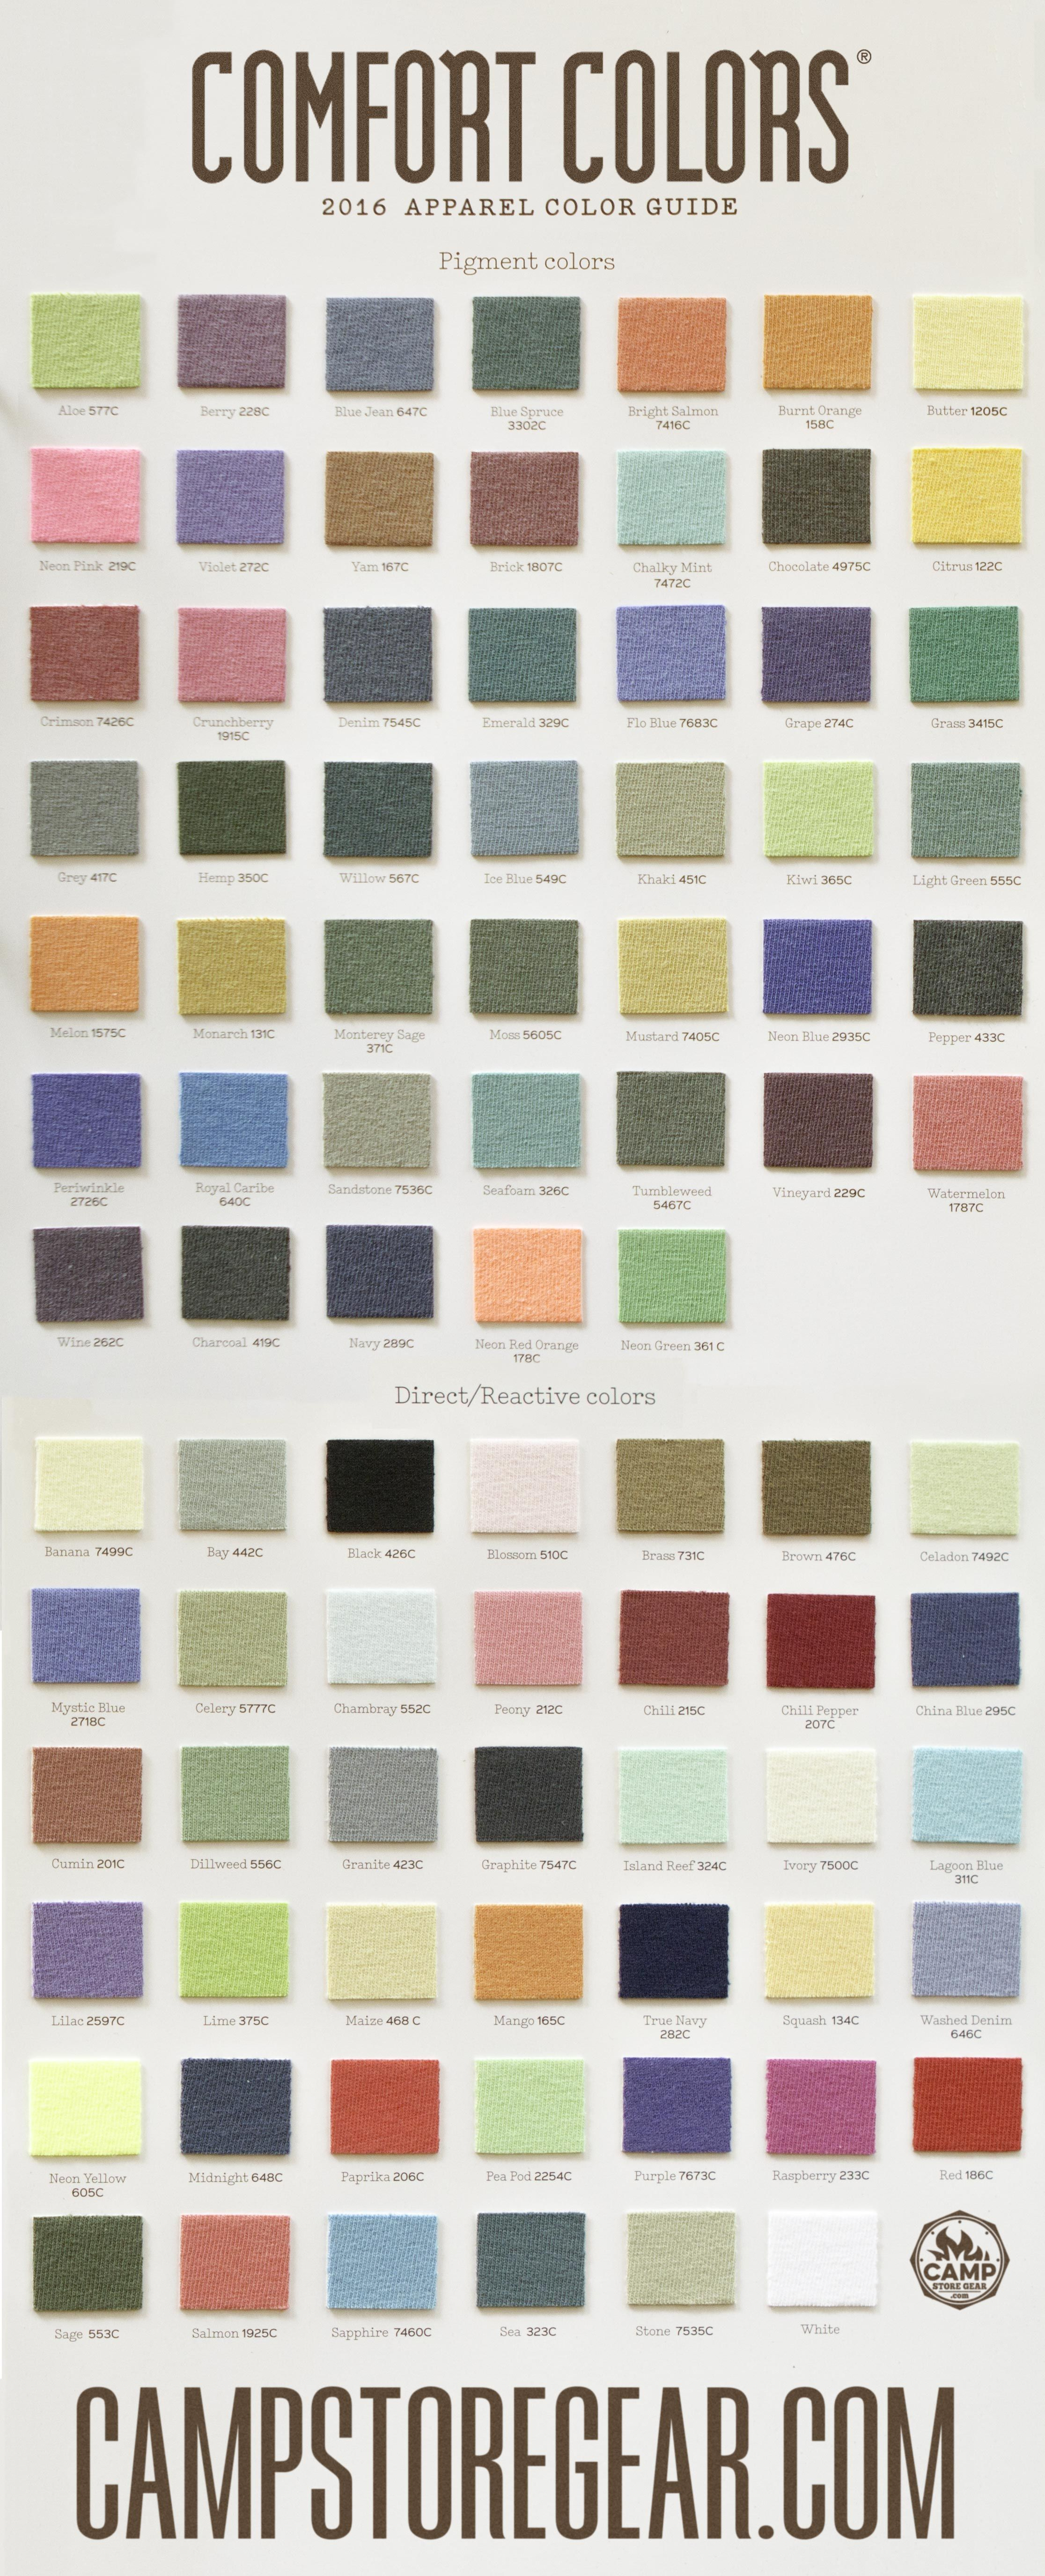 Comfort Colors 2016 Arel Color Guide All Swatches